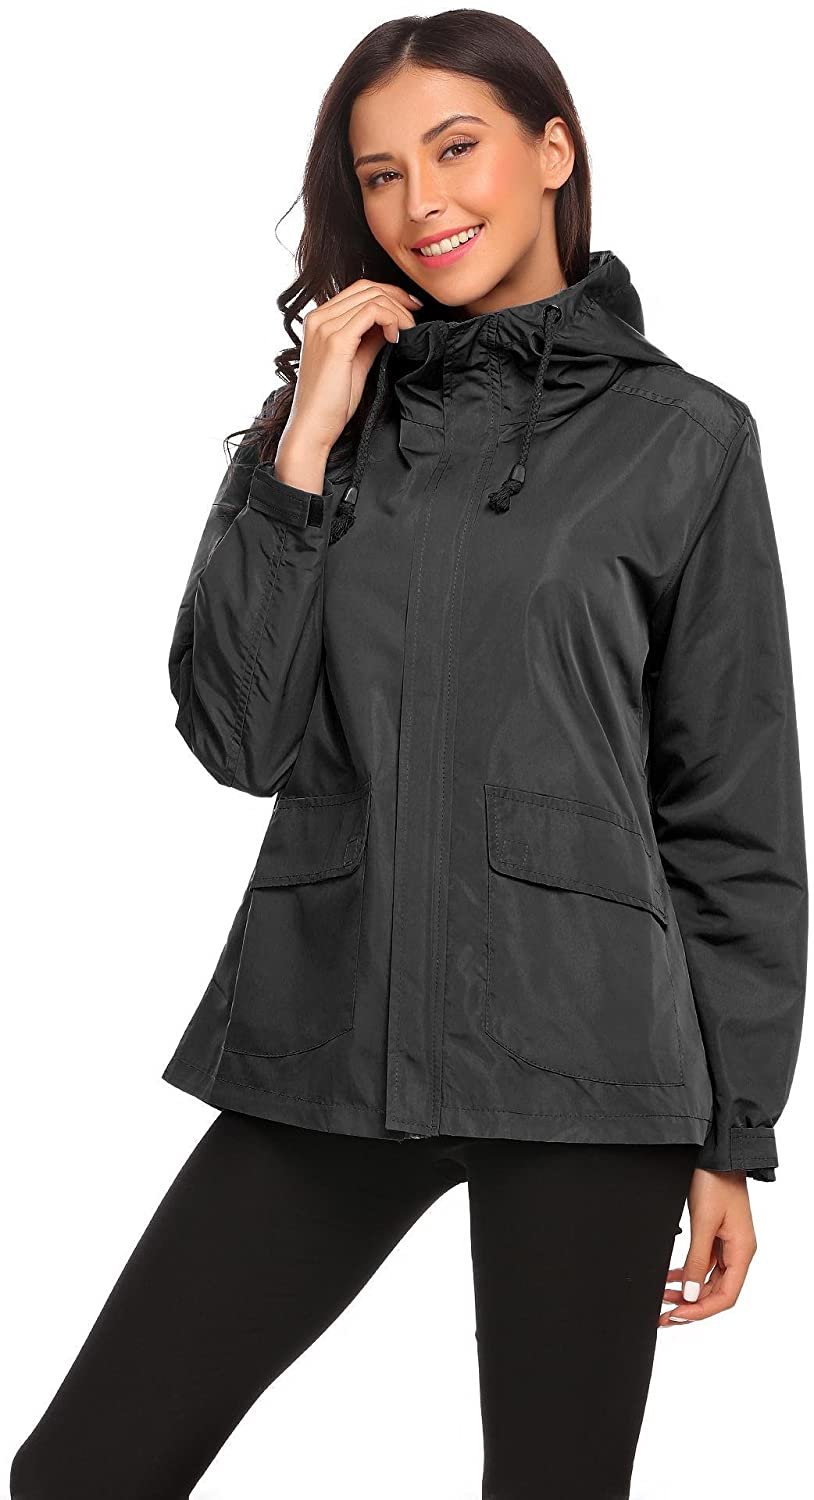 Vansop Women's Zip Up Drawstring Military Anorak Jacket with Pockets(Black L)